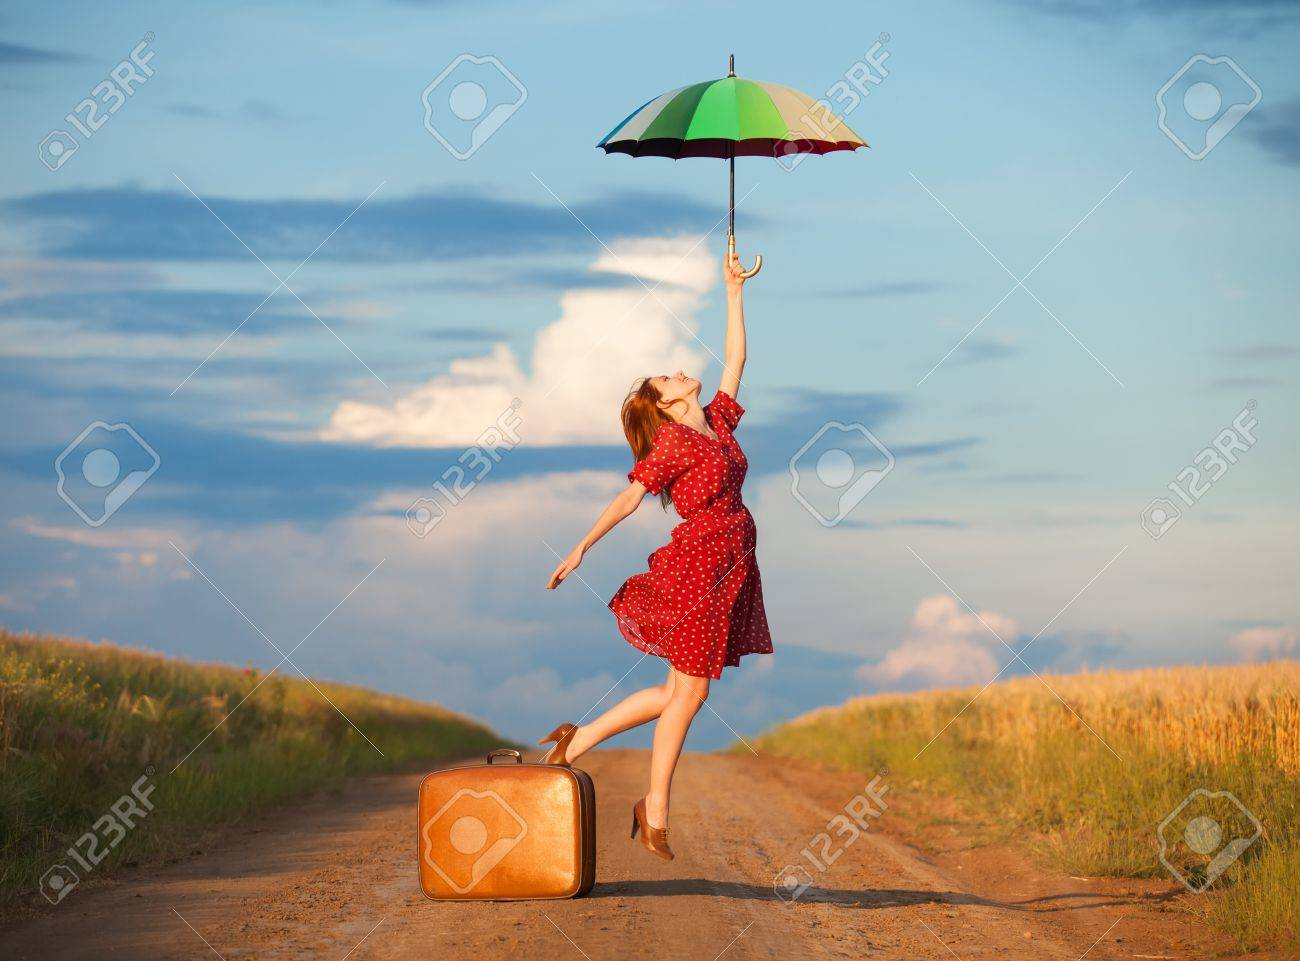 Redhead girl with umbrella and suitcase at outdoor Stock Photo - 20260942